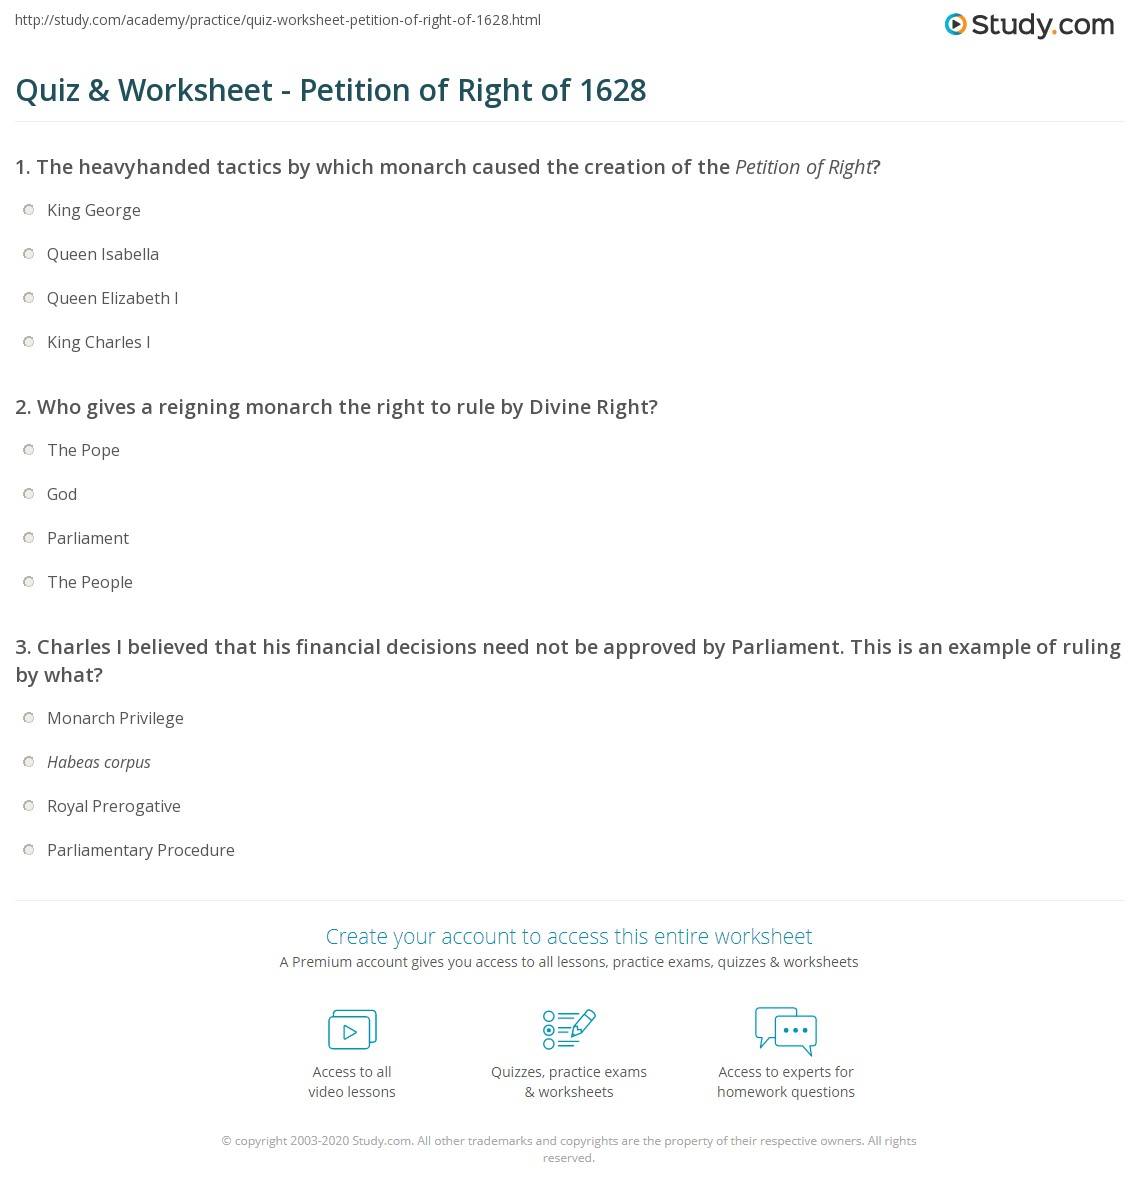 Quiz Worksheet Petition Of Right Of 1628 Study